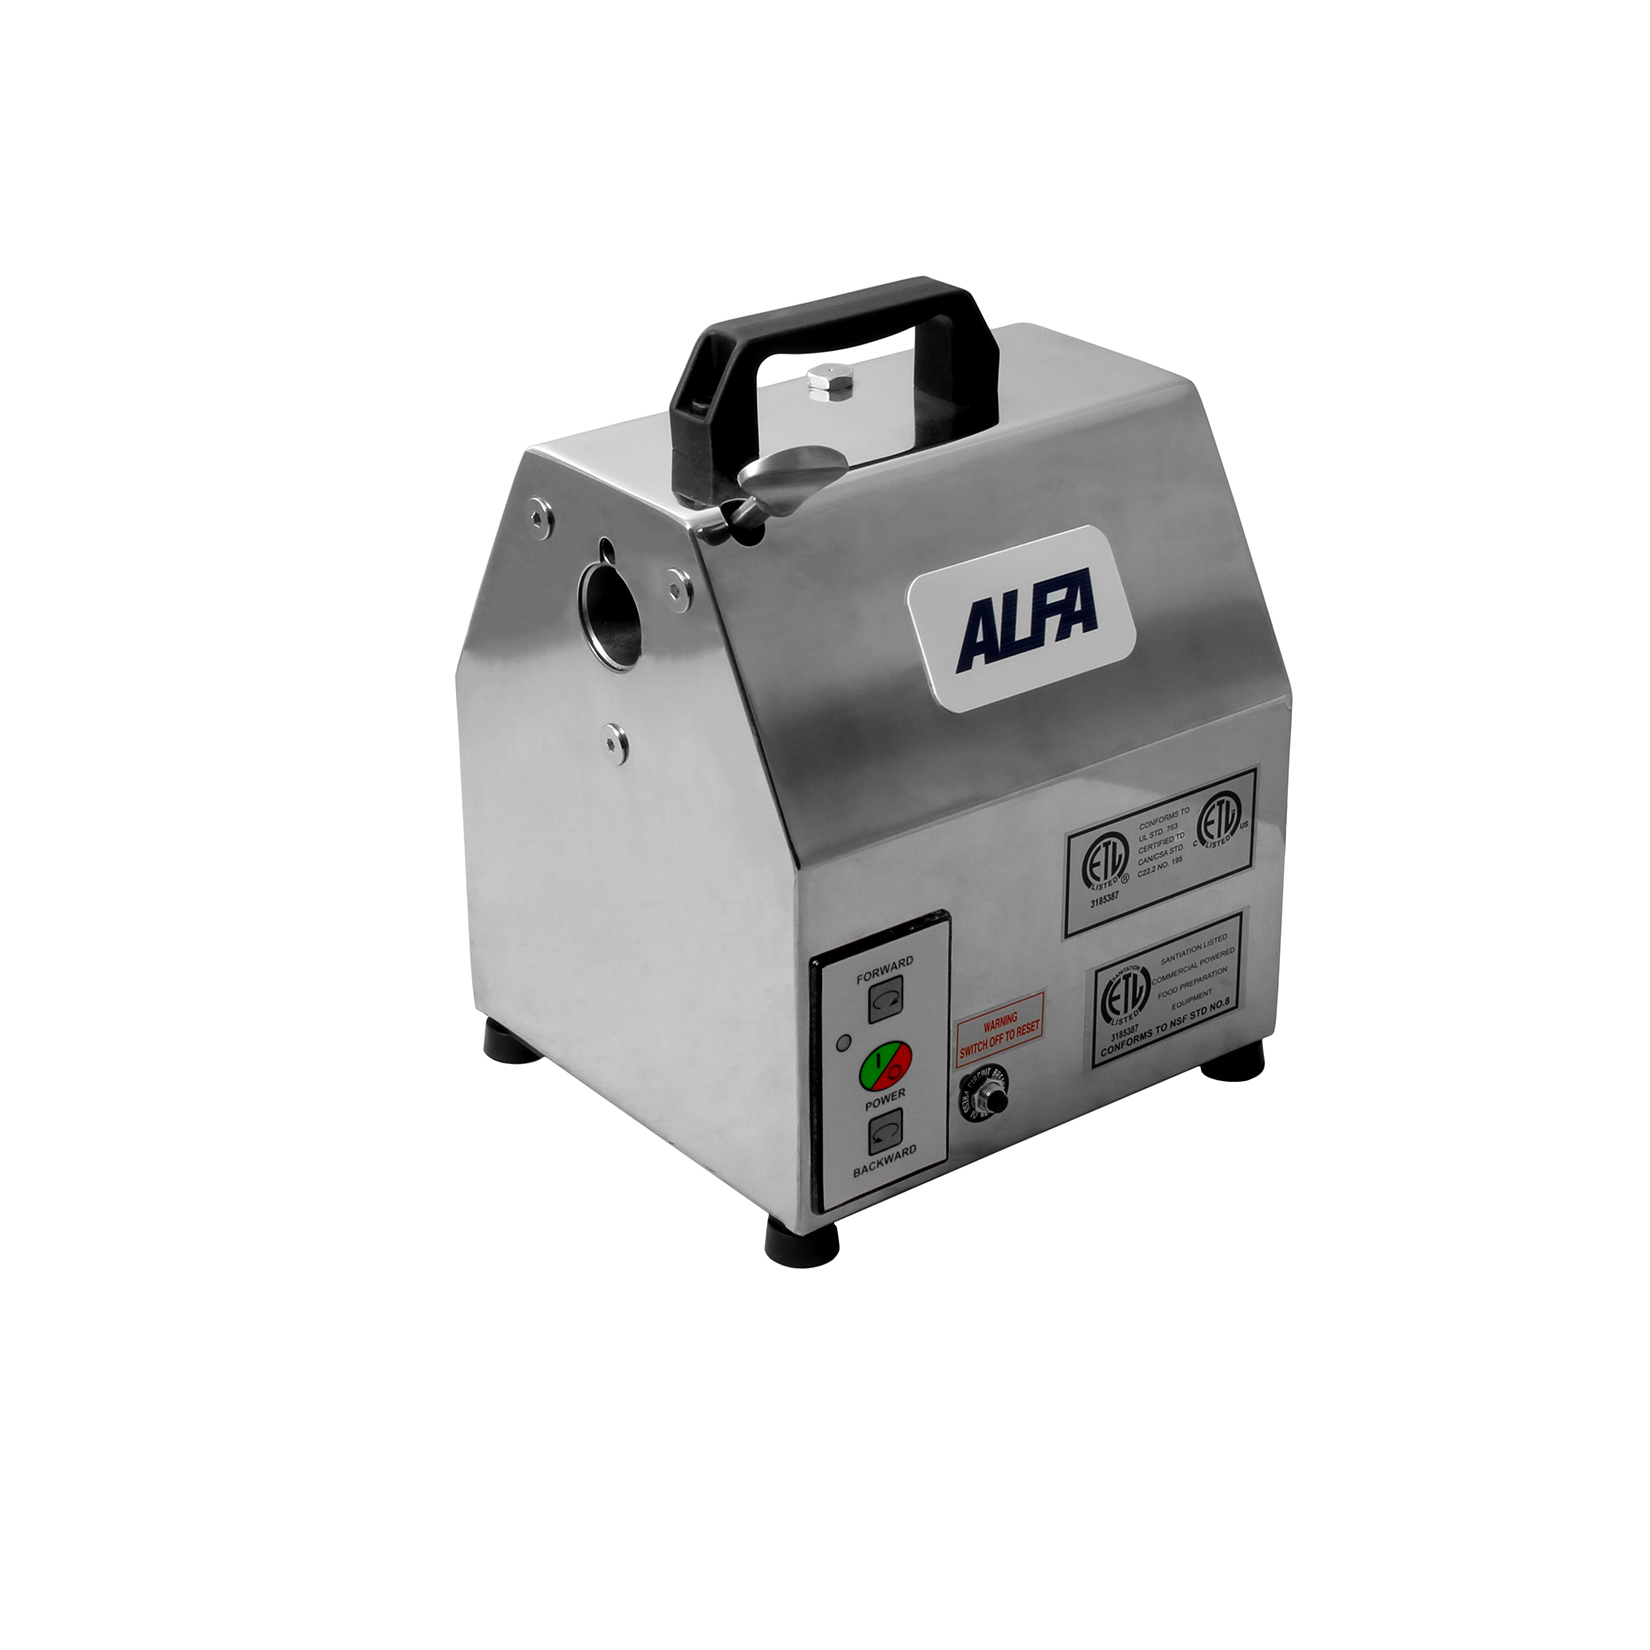 Alfa International APB-12 drive unit, shredder slicer